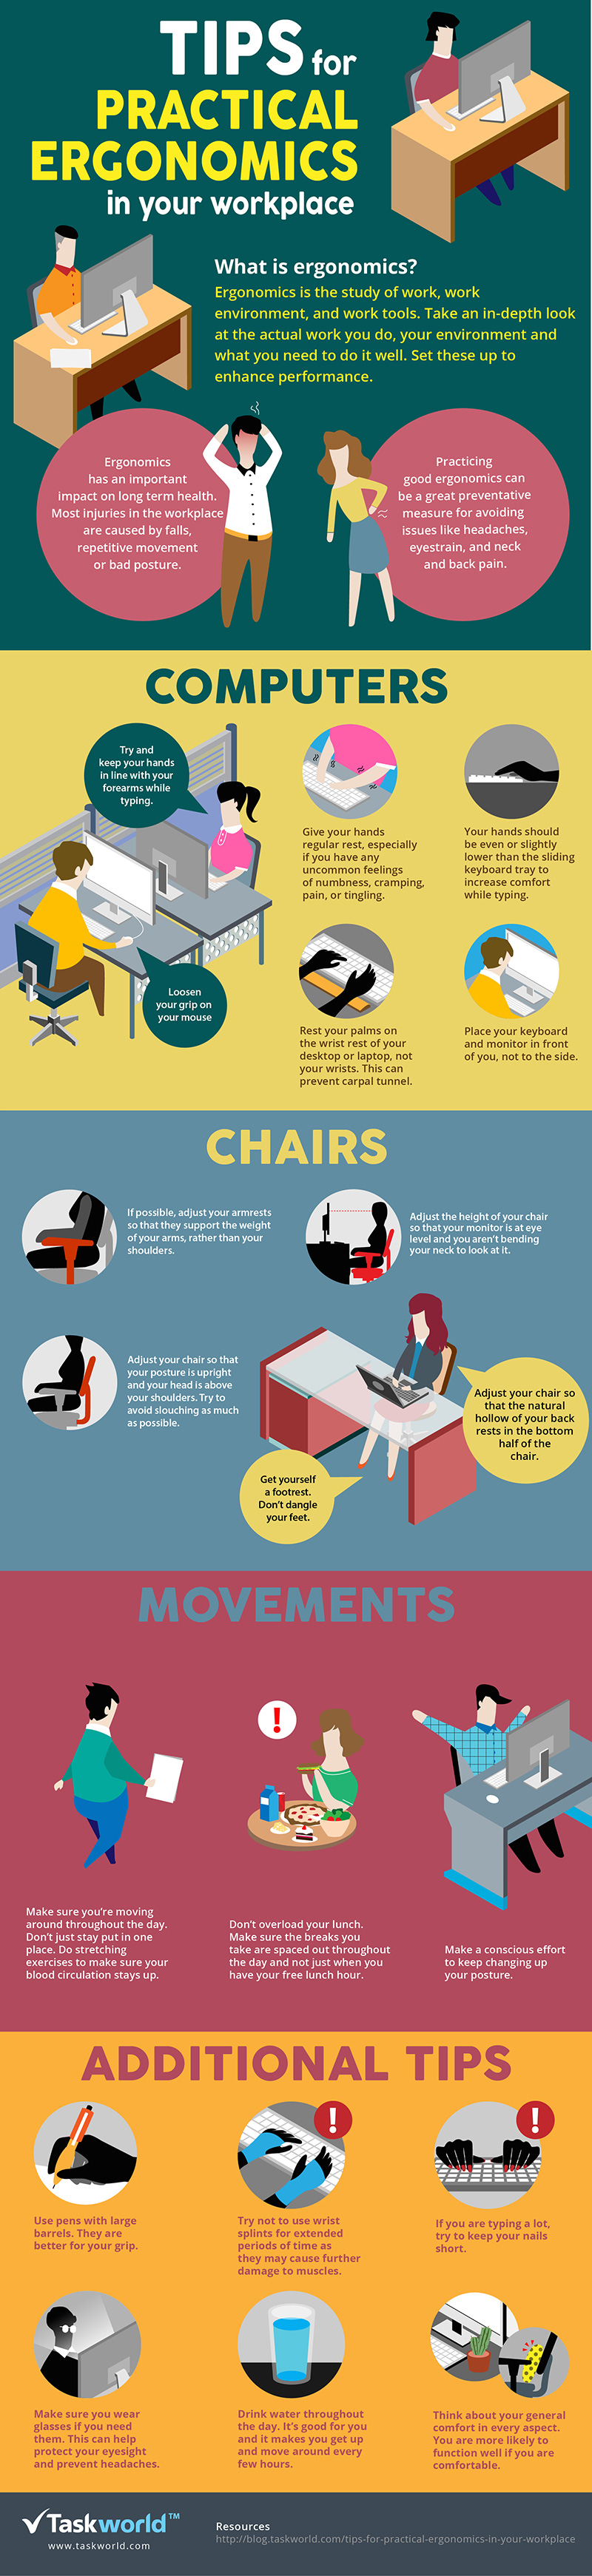 Practical Tips for Ergonomics in the Workplace